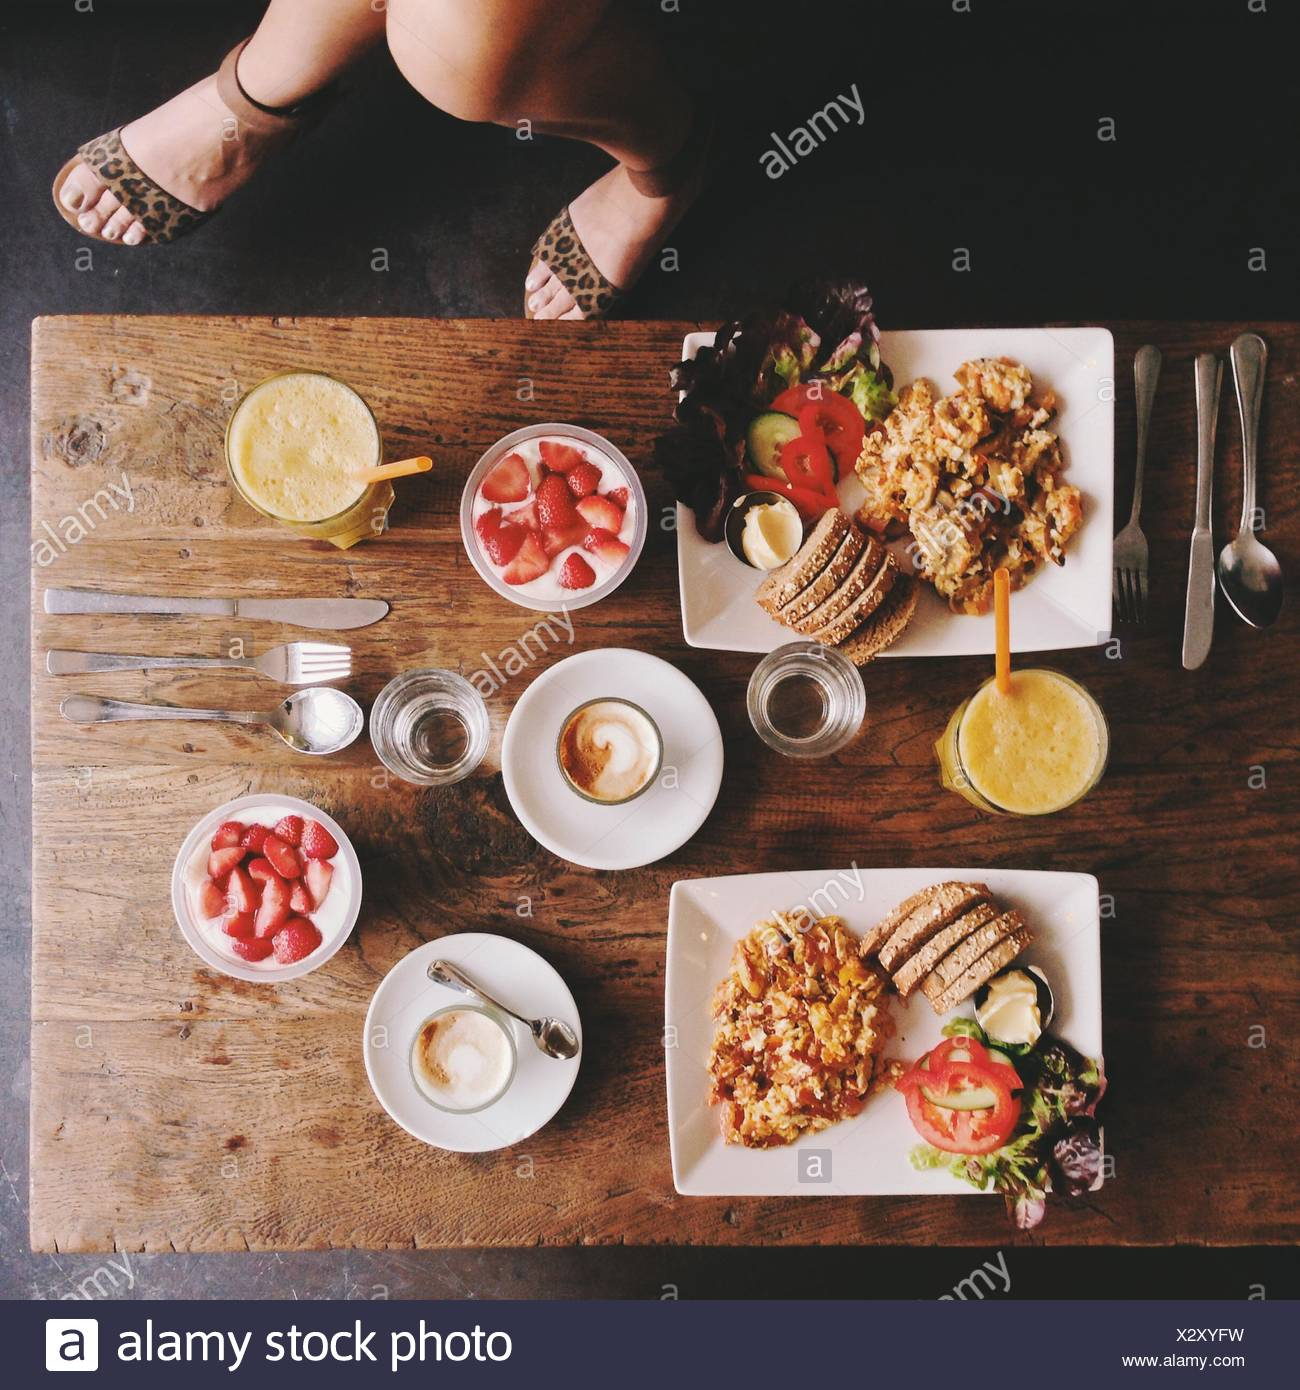 Overhead view of woman's legs and breakfast table - Stock Image